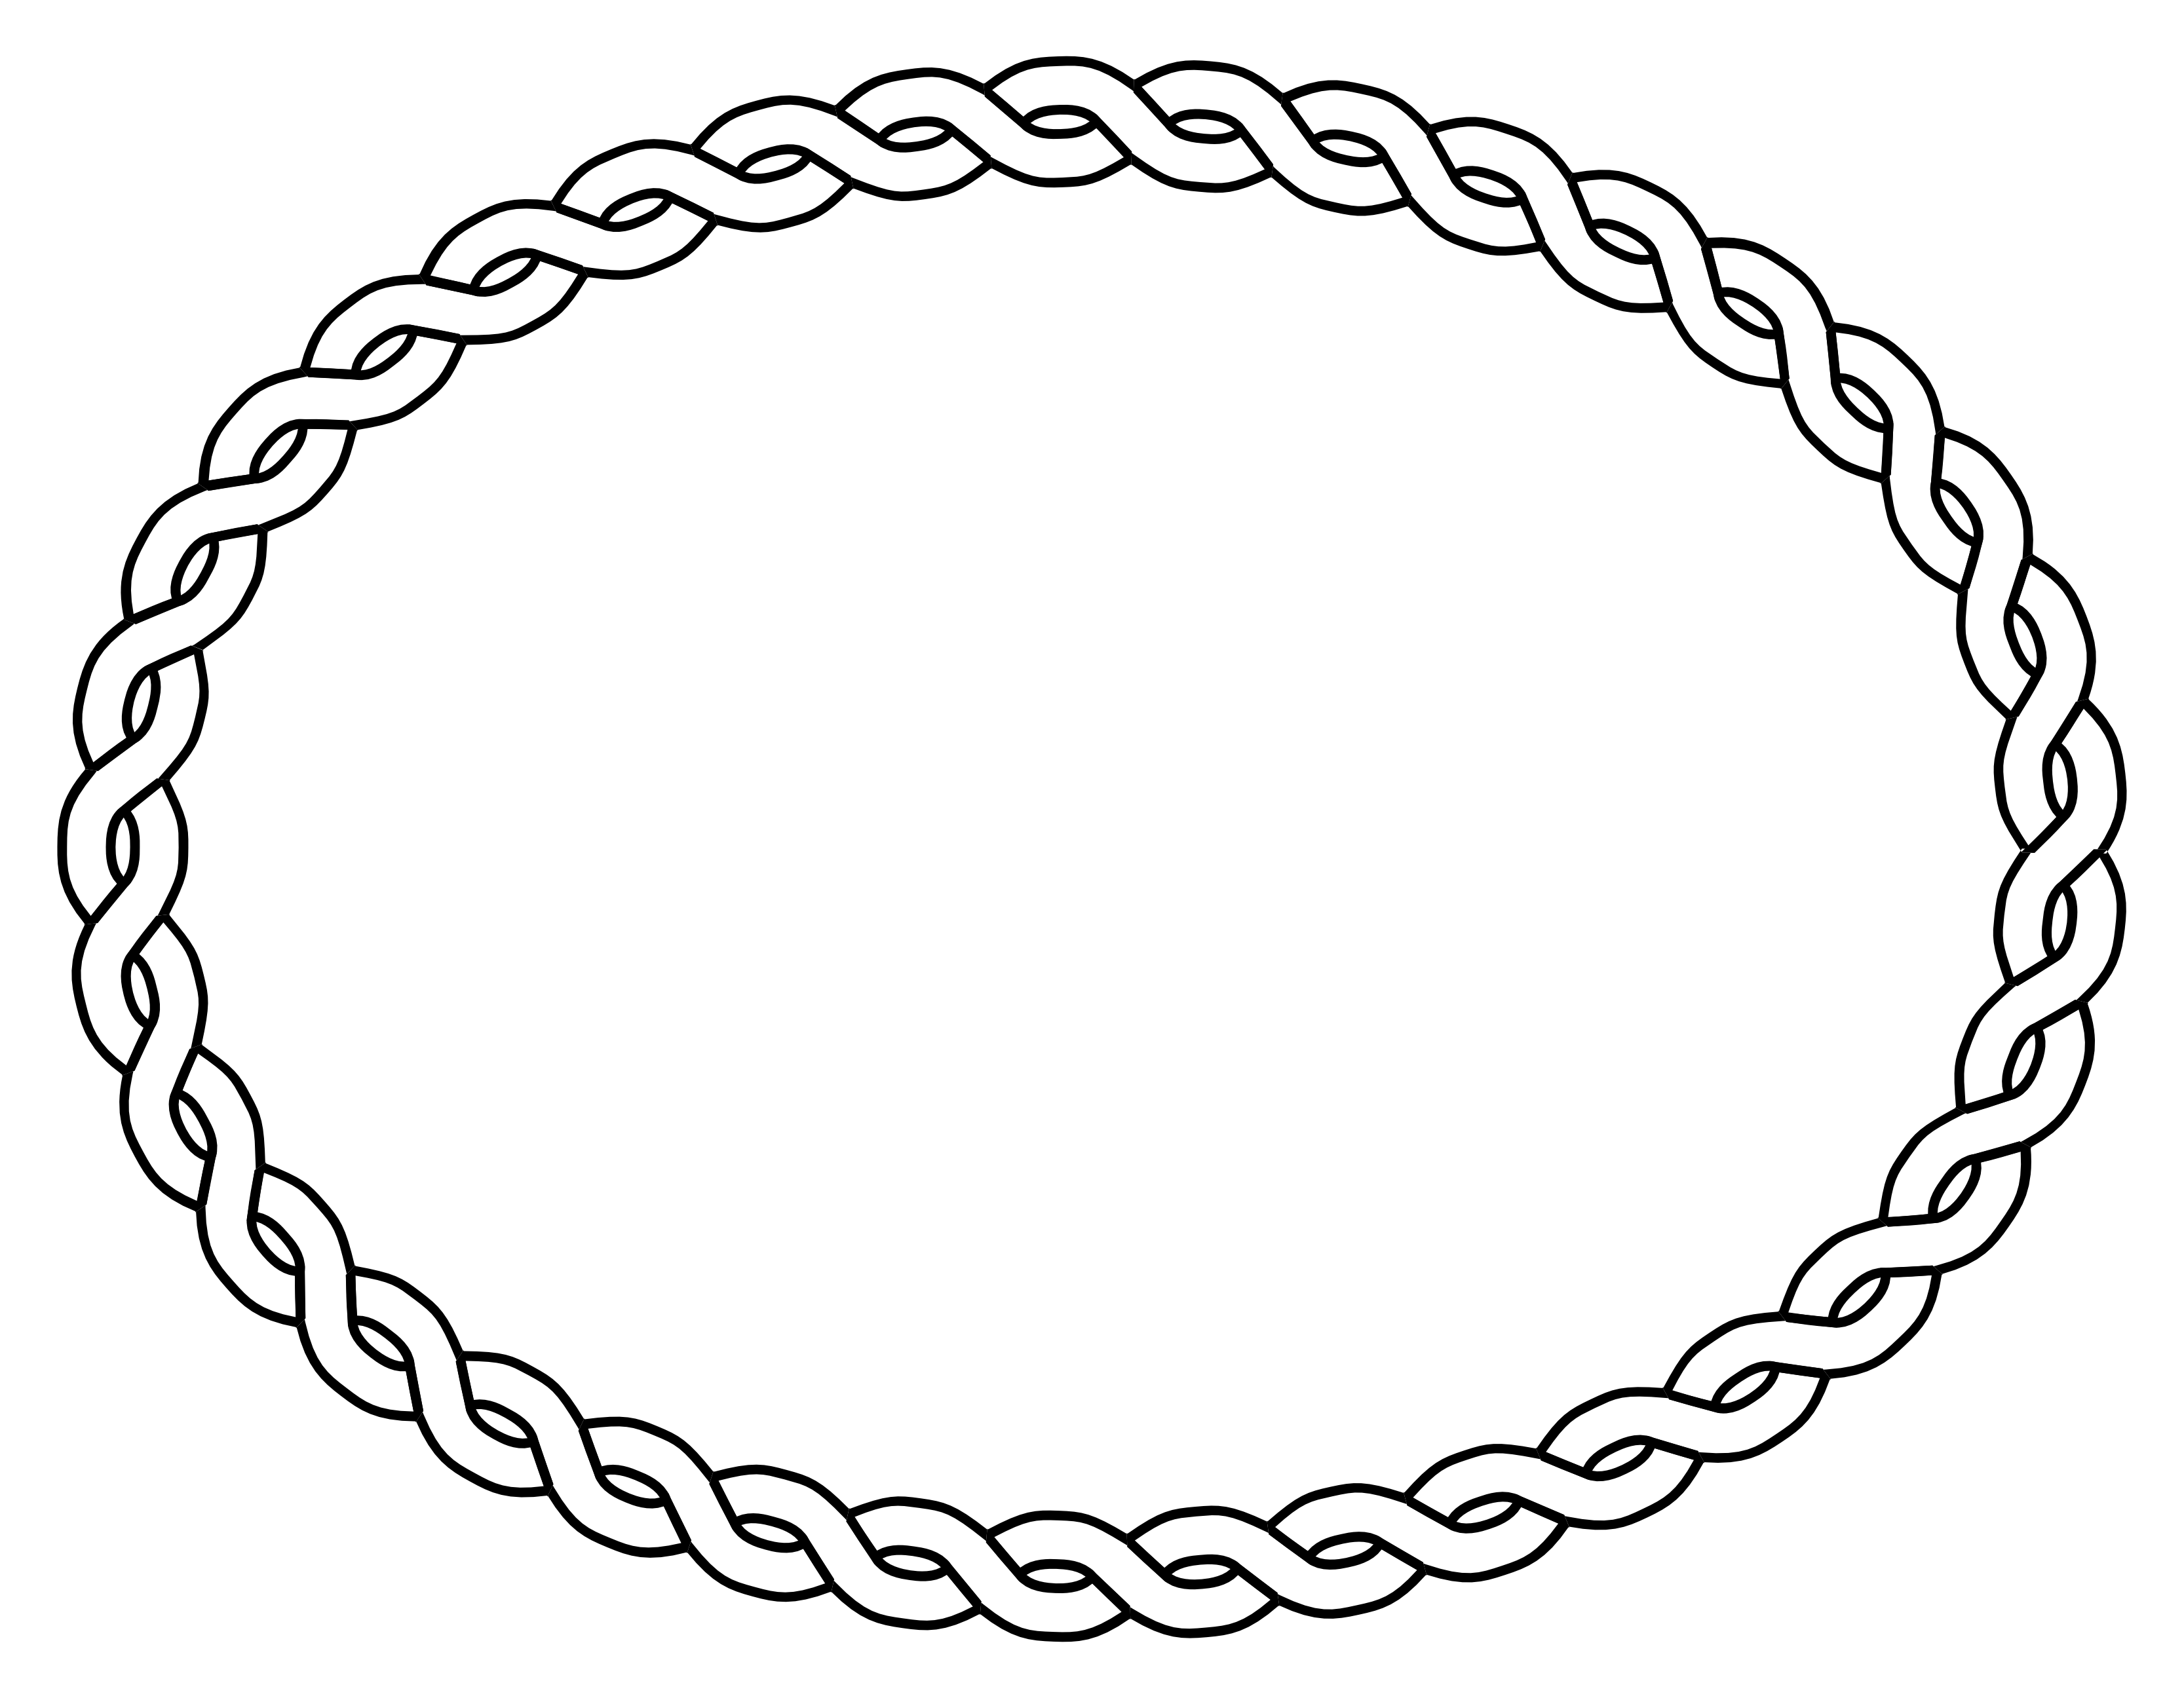 Oval - Oval PNG Black And White